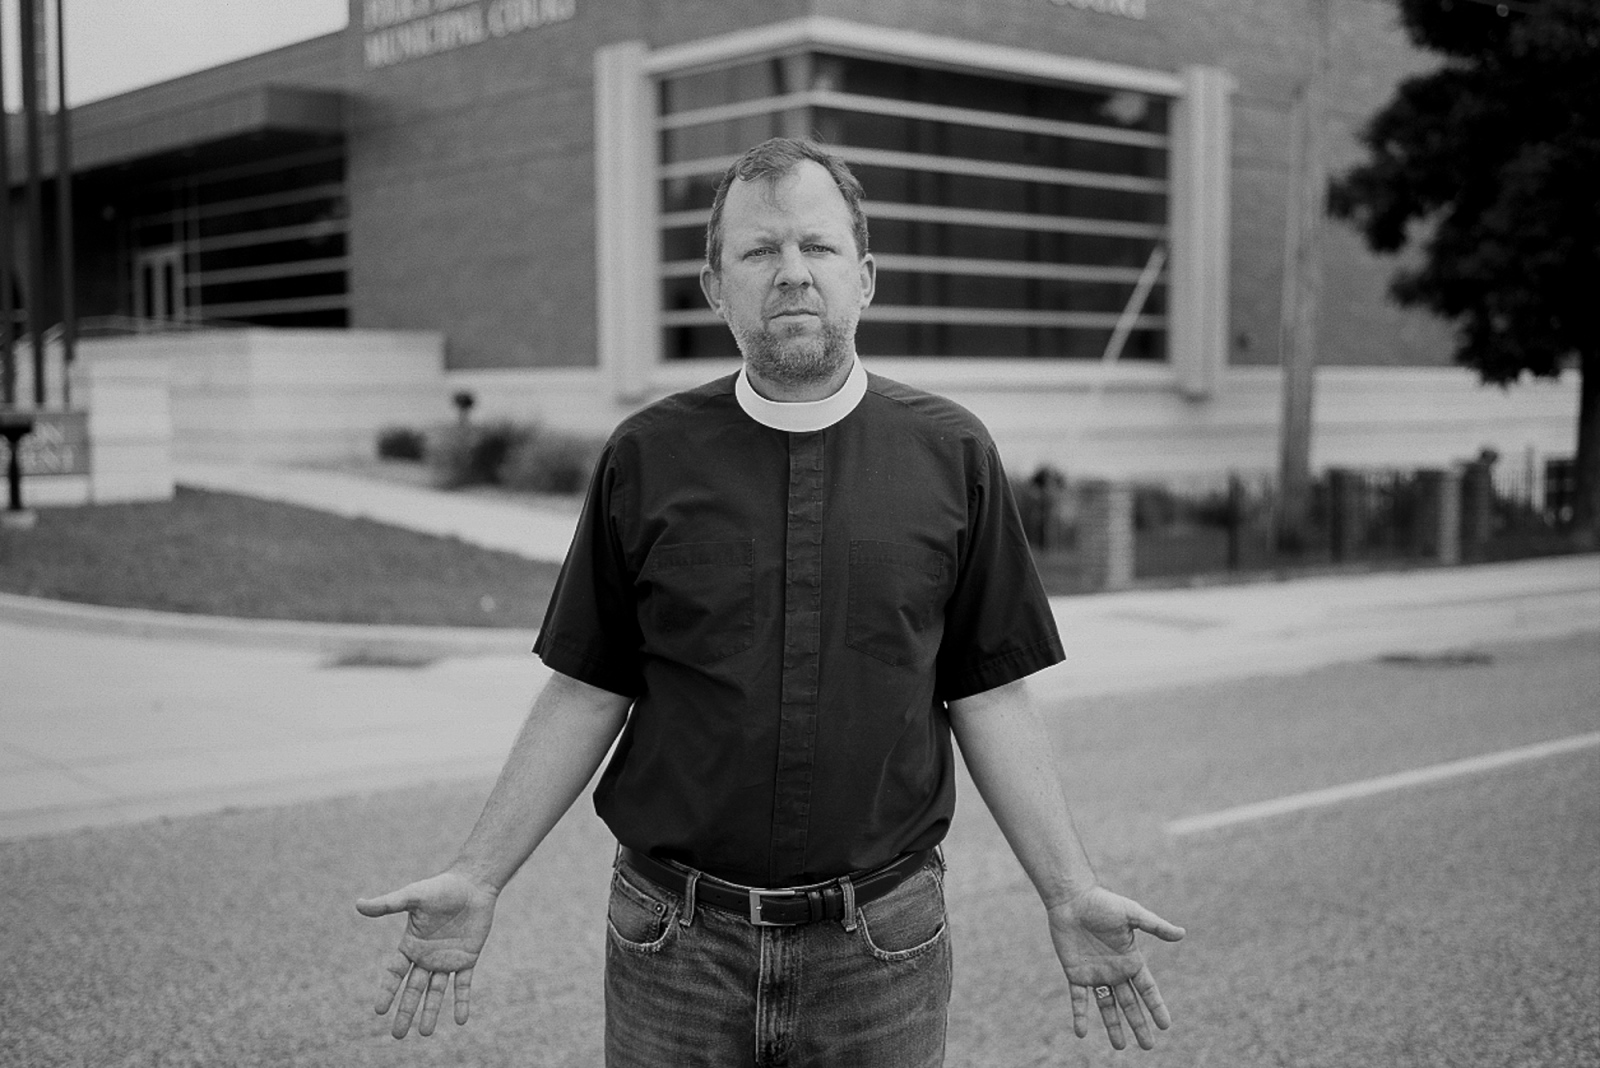 Mike Kinman in front of the Ferguson Police Station.